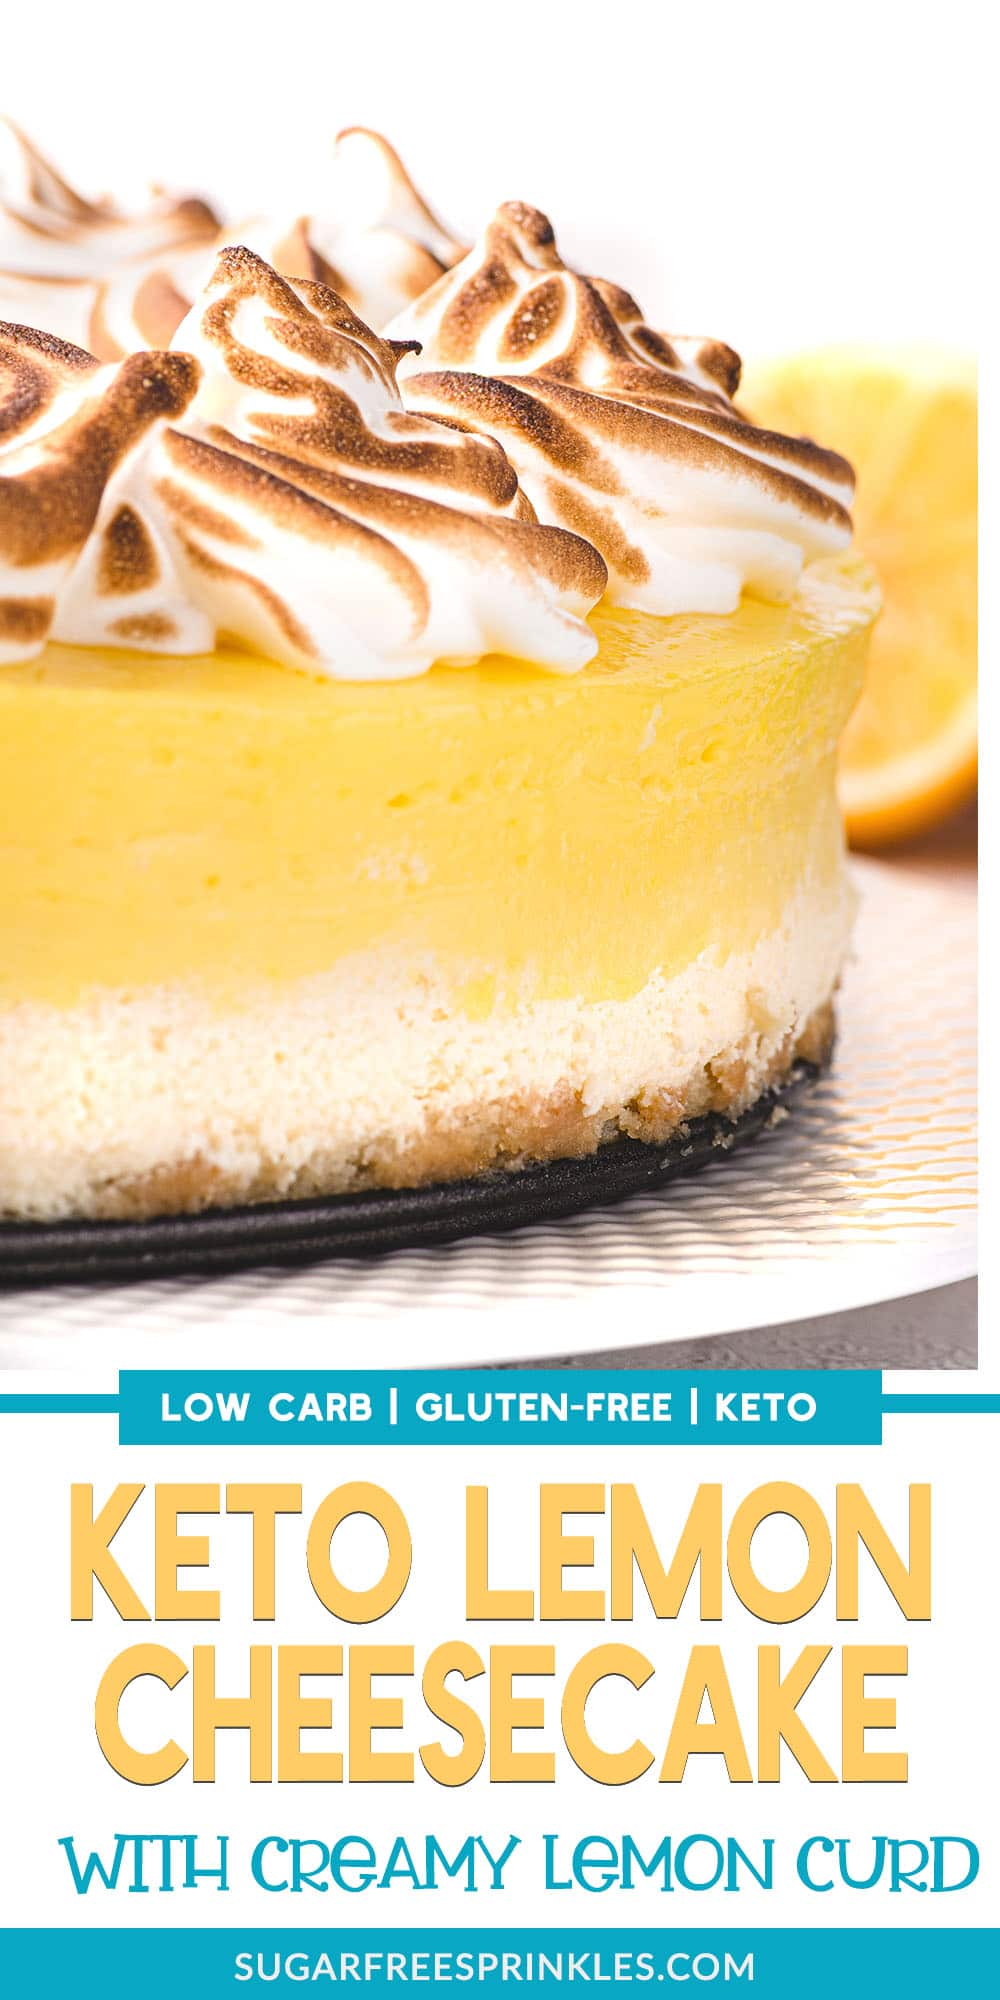 If you like lemons, you\'re in for a treat. This low carb lemon cheesecake is topped with a luscious curd and sweet fluffy meringue. Made without refined sugar this cheesecake recipe will fit perfectly into your low carb or keto diets. A great dessert for a holiday or a crowd or just because it\'s Tuesday.